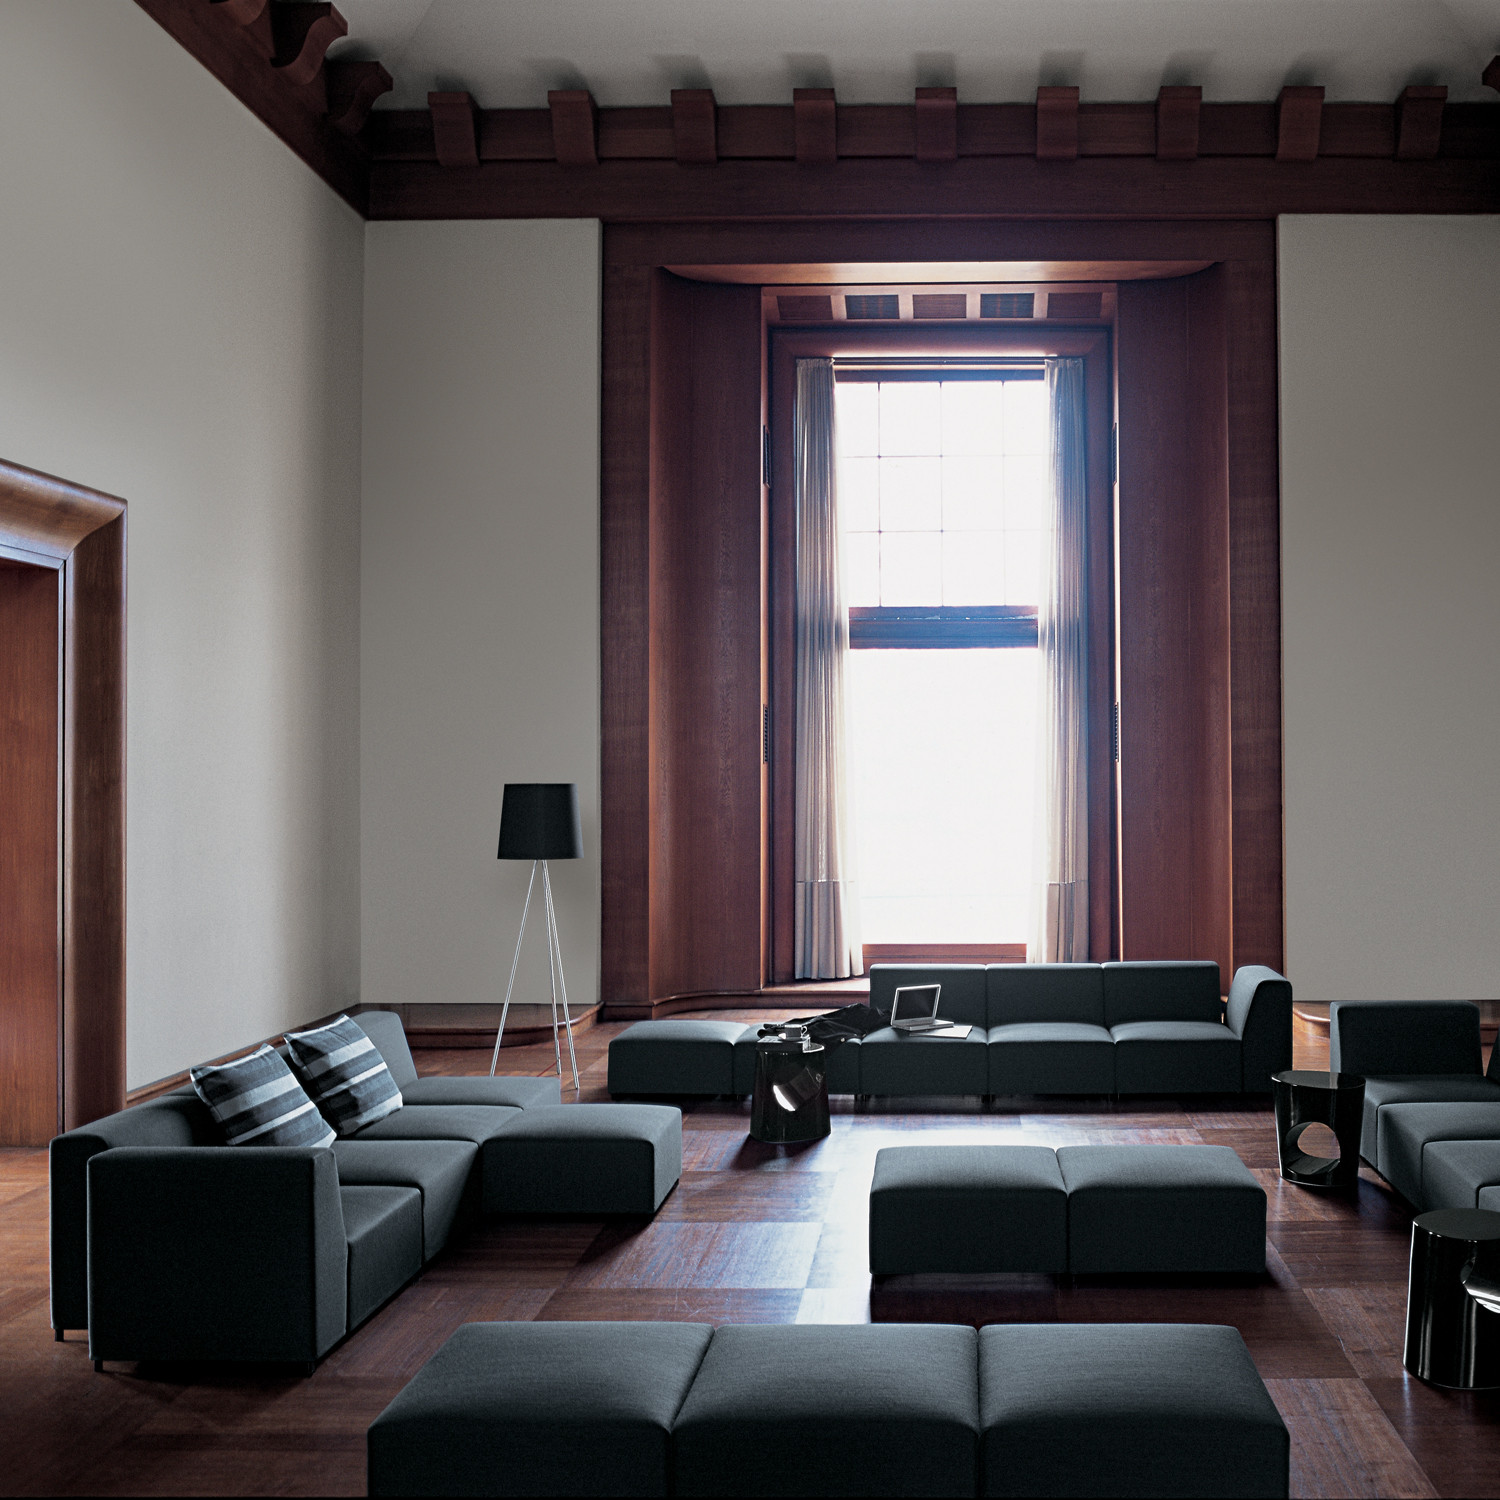 Quadro Sofa from Tacchini